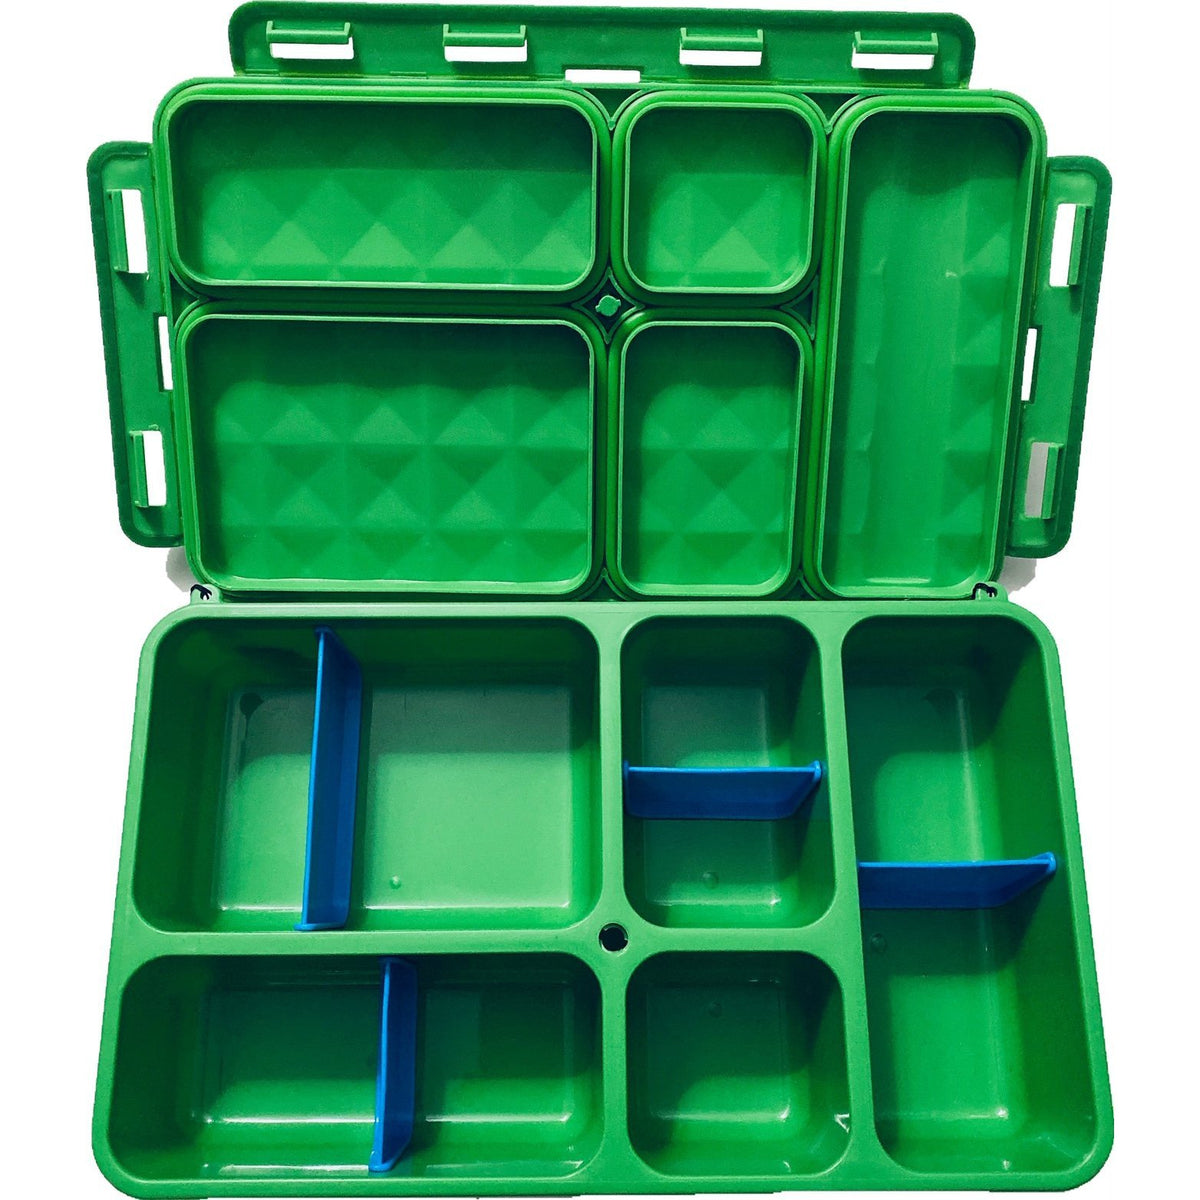 Go Green Divider Section 1 & 2 - Blue-Accessories-Lunchbox Mini